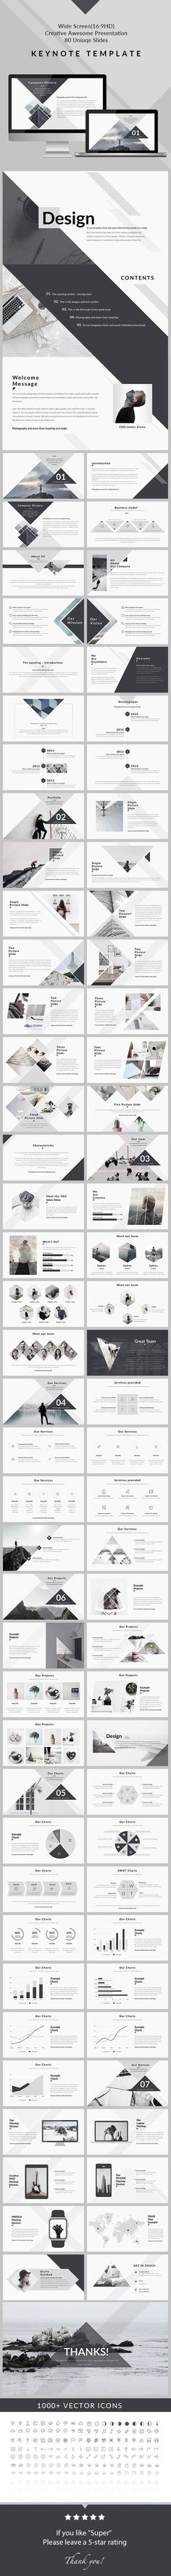 Design - Clean & Creative Keynote Template - Creative Keynote Templates #Infographics